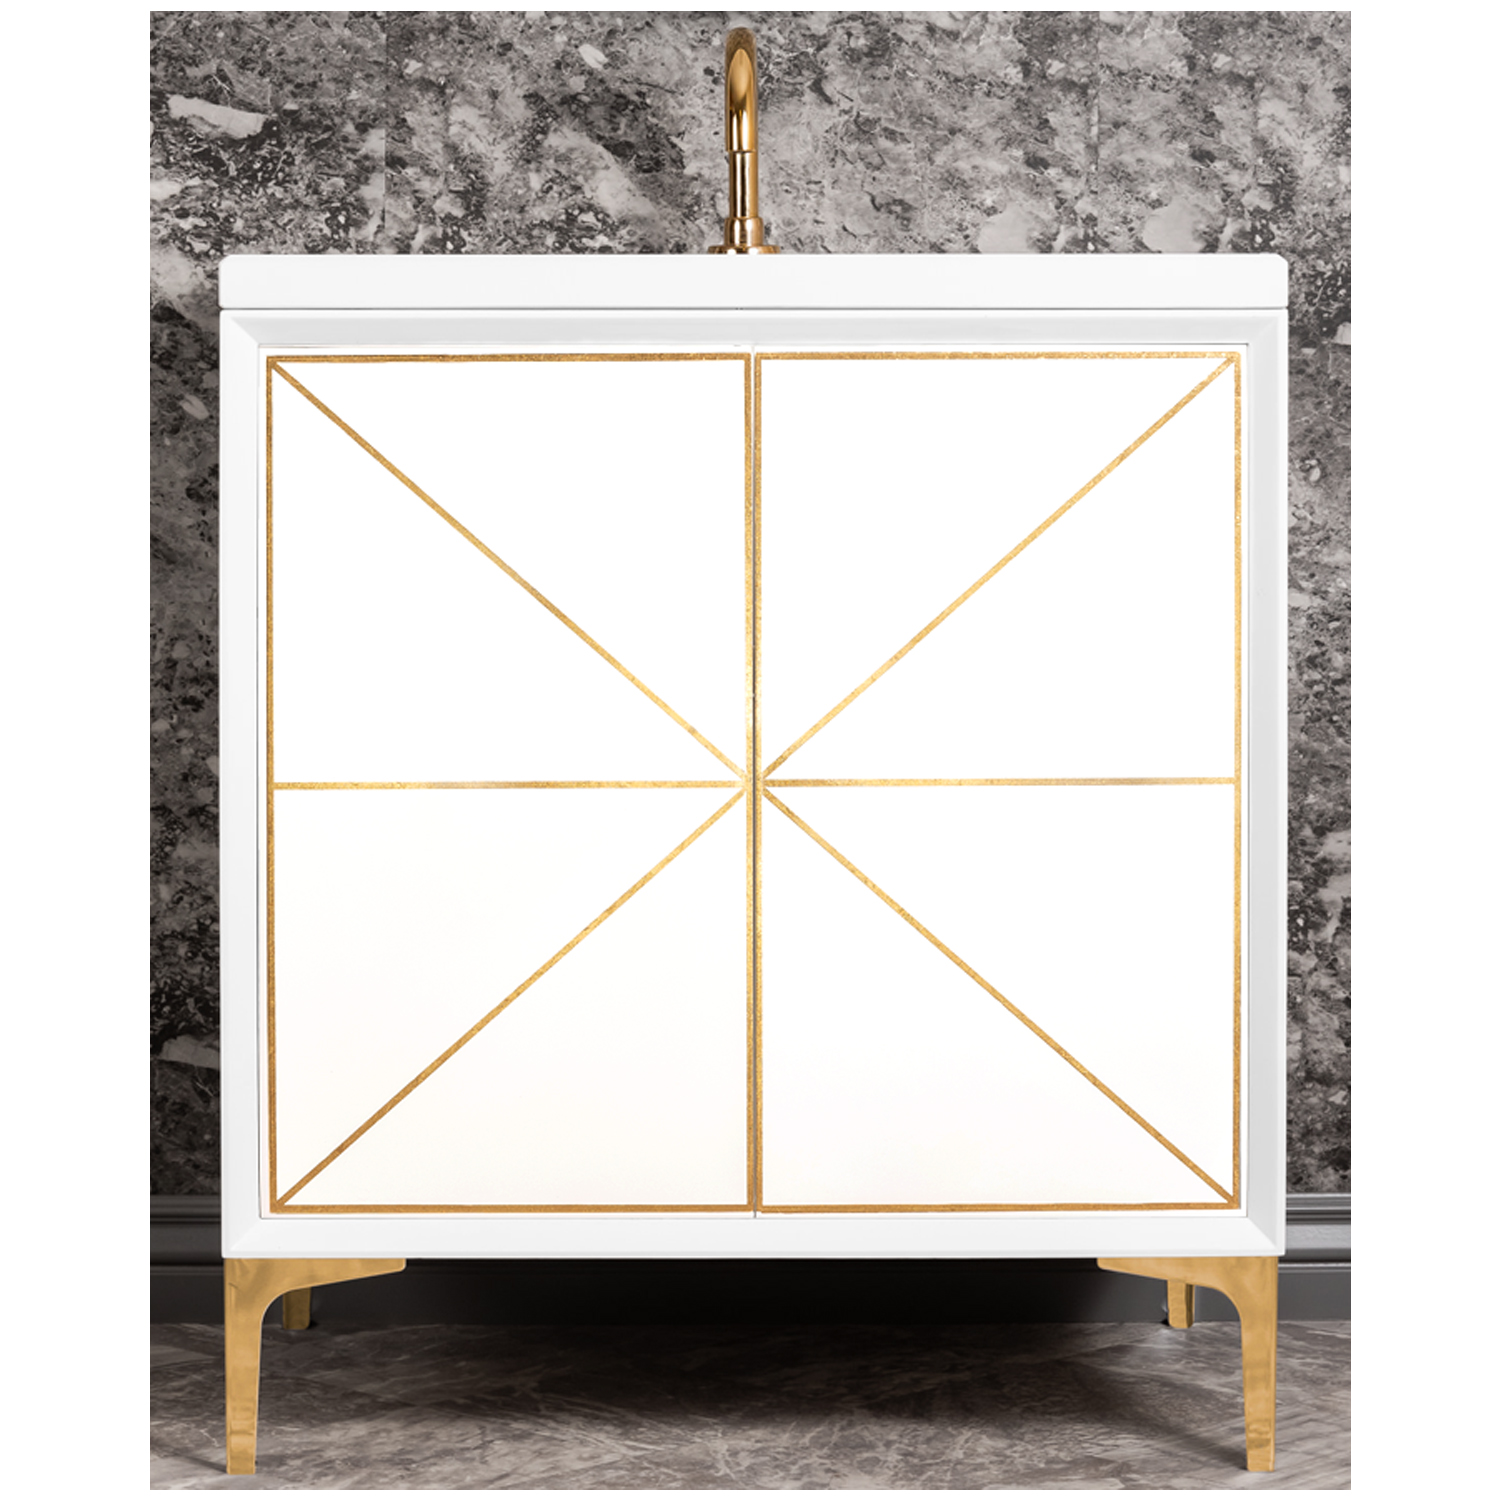 """VAN30W-002   30"""" White Divergence - Shown with PB (Polished Brass Finish)"""